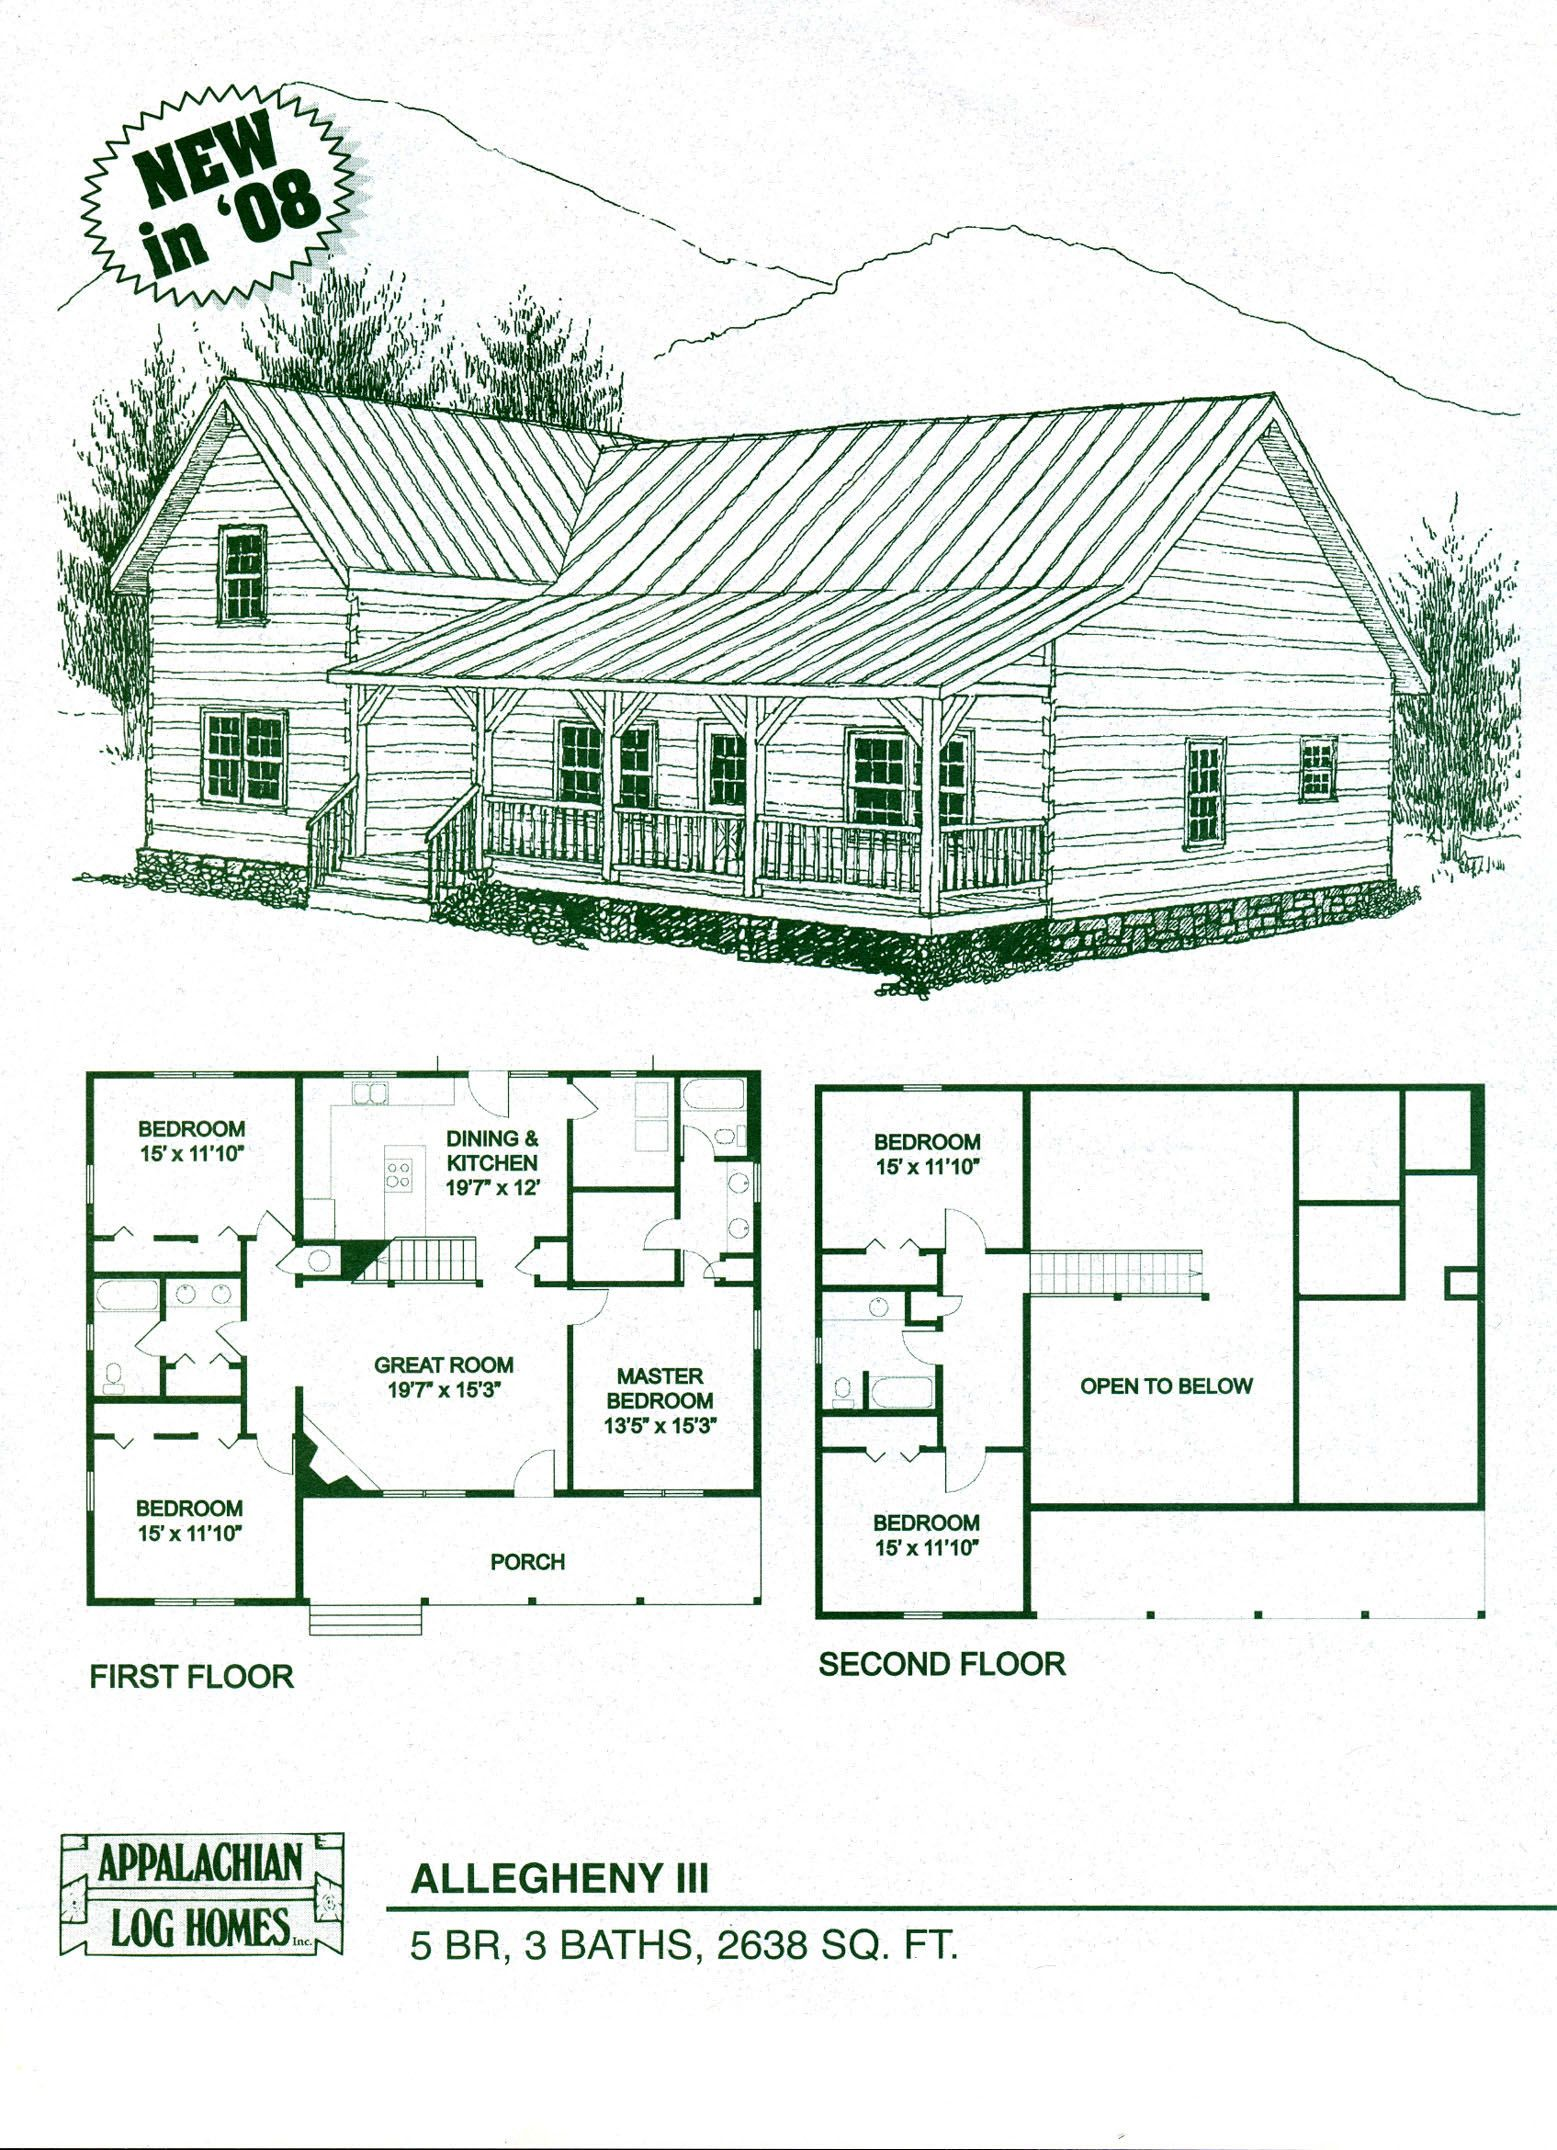 Log home floor plans log cabin kits appalachian log for Plans for log homes